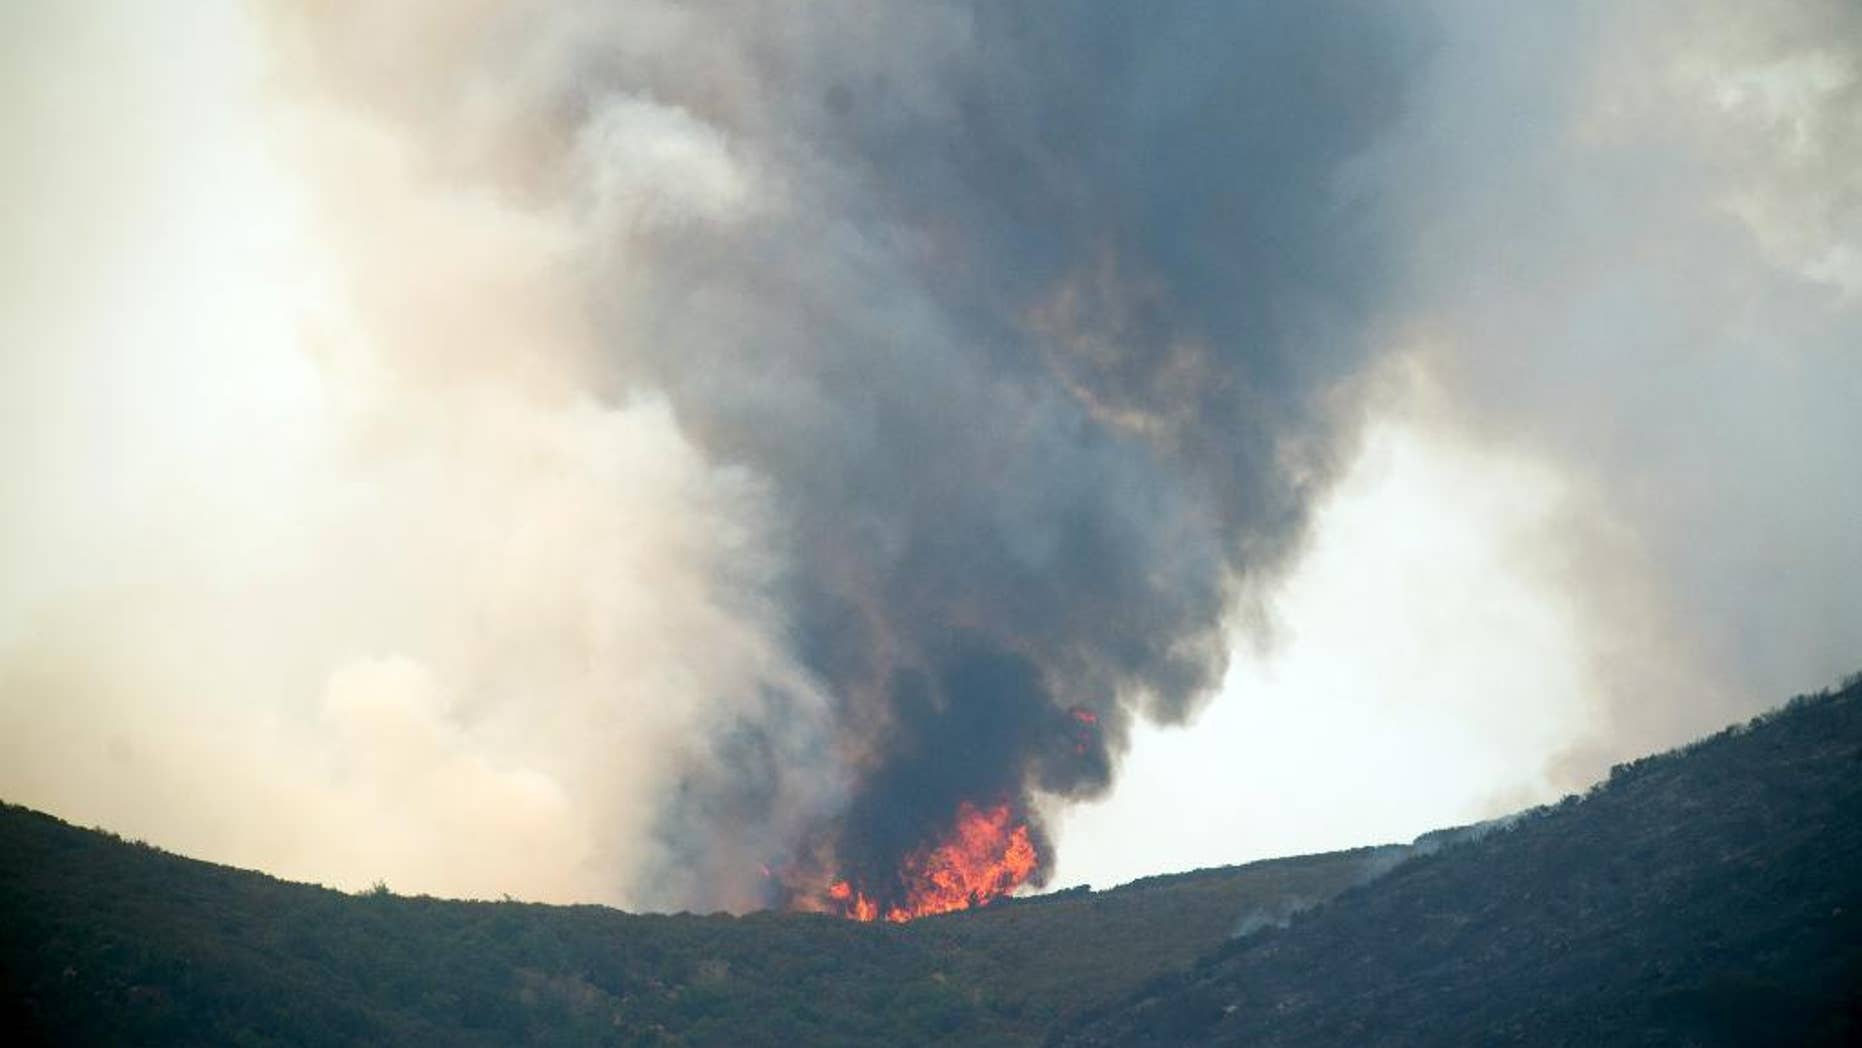 Smoke and flames rise from a ridge top as the Wragg fire burns near Winters, Calif., on Thursday, July 23, 2015. According to Cal Fire, the blaze scorched more than 6,000 acres and is threatening 200 structures. (AP Photo/Noah Berger)